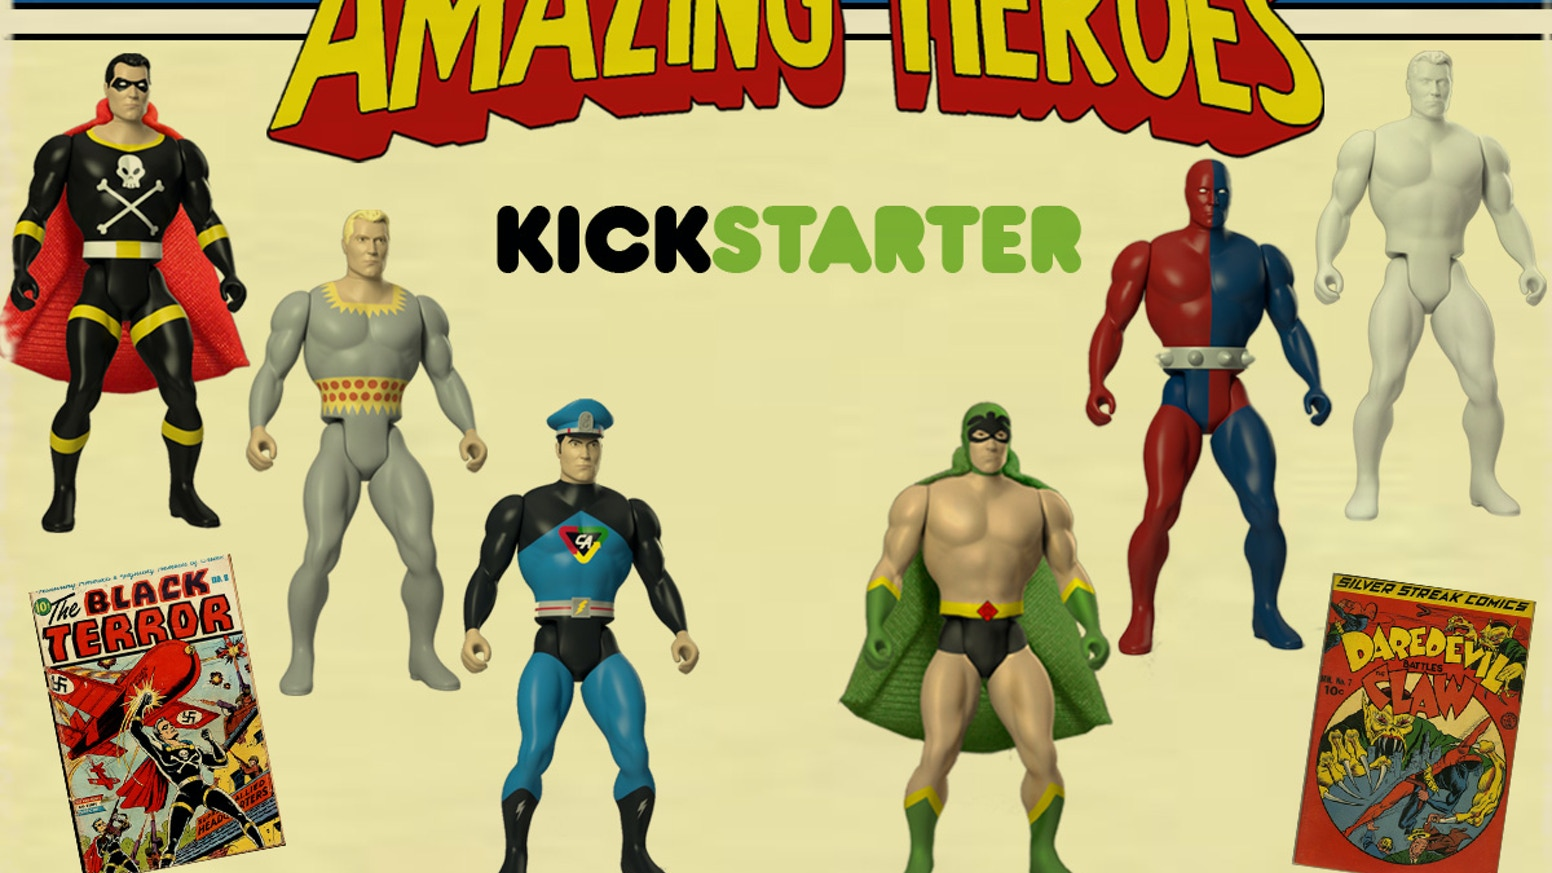 b0f33fb2be7f1 Amazing Heroes  Retro Style Super Hero Action Figures by Bill Murphy ...